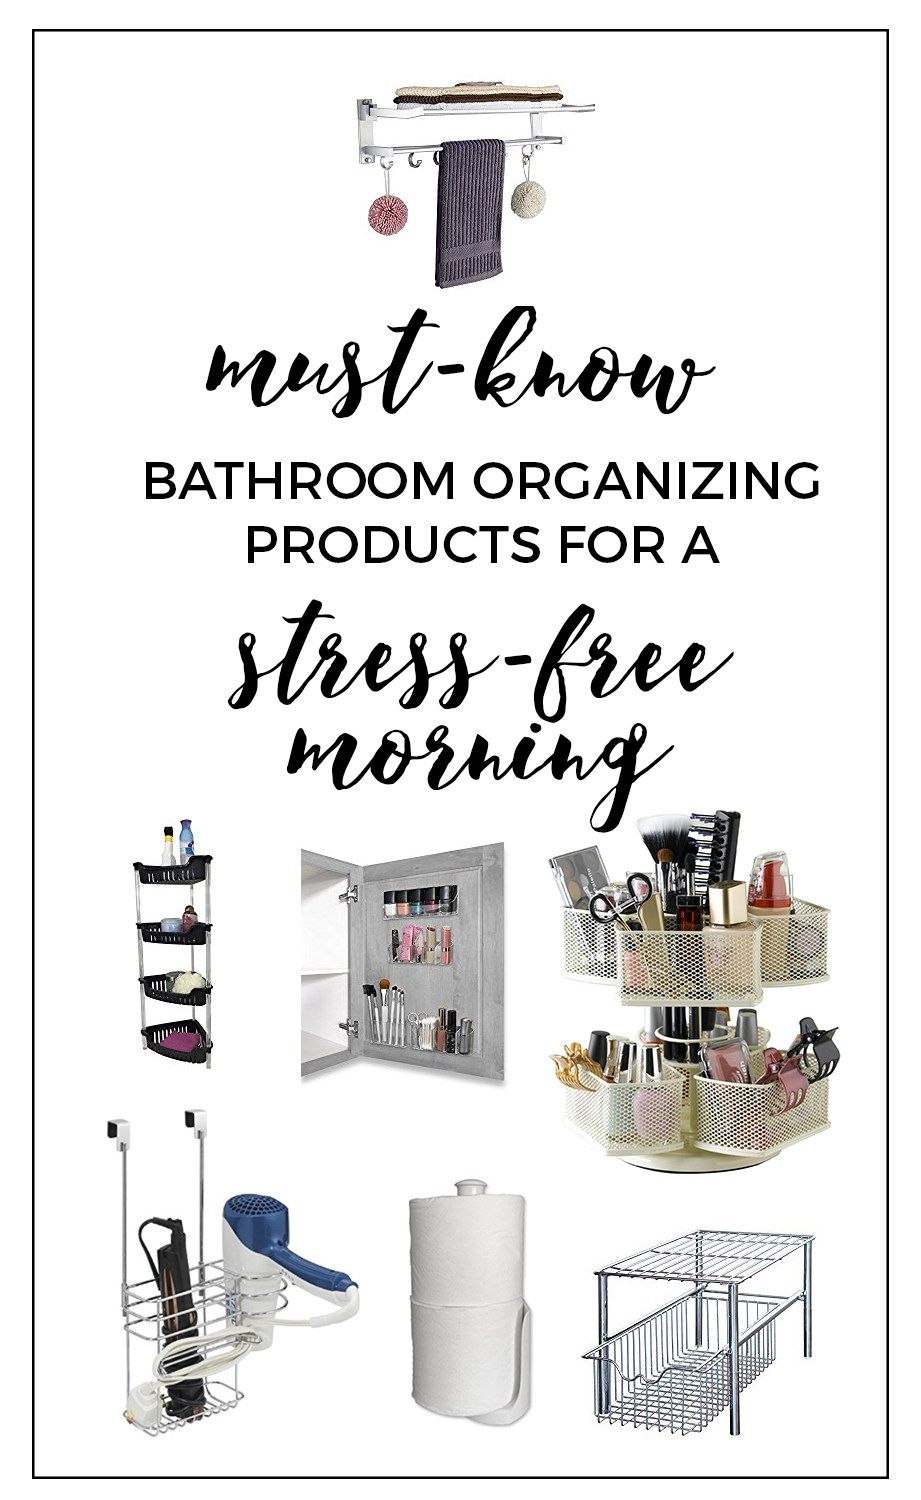 Bathroom Organizing Products - These are some great (and affordable) hacks to organize your bathroom